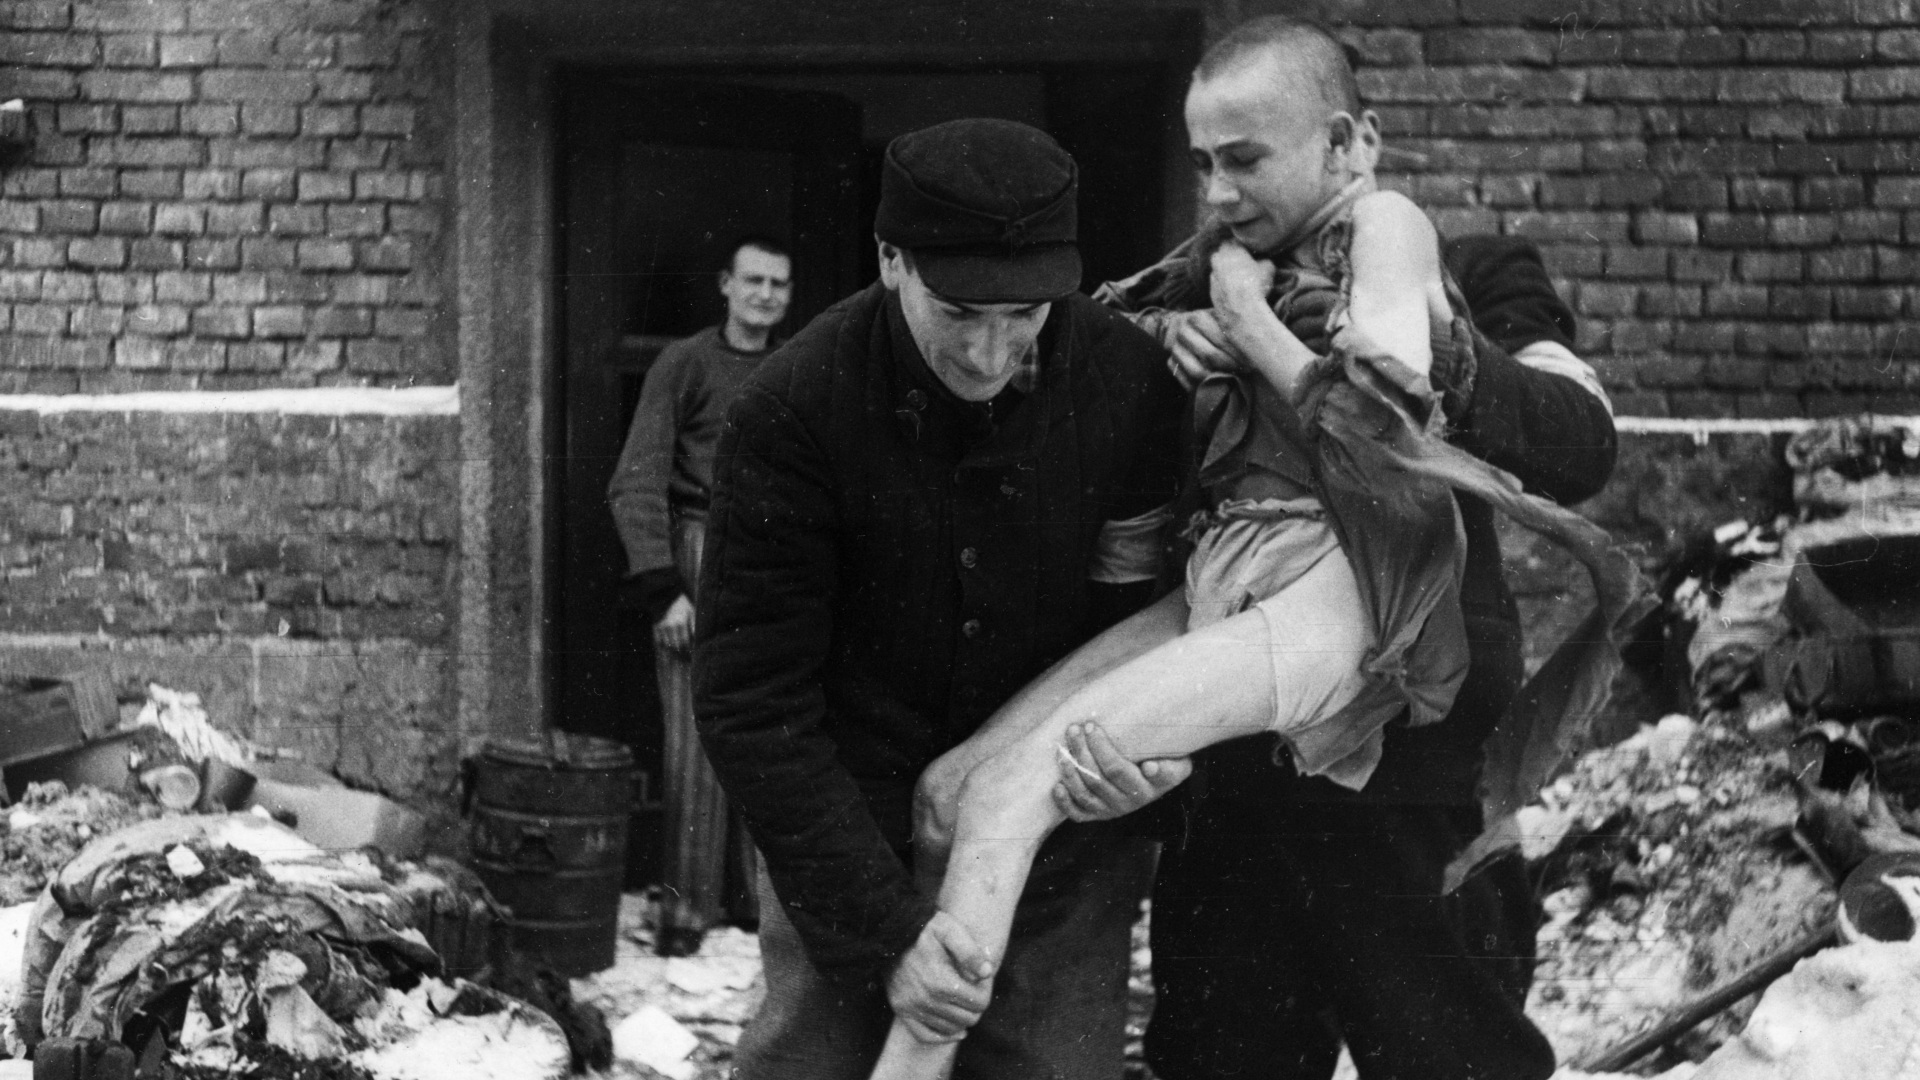 A 15 year old Russian boy, Ivan Dudnik, being rescued from Auschwitz. (Credit: Sovfoto/UIG via Getty Images)